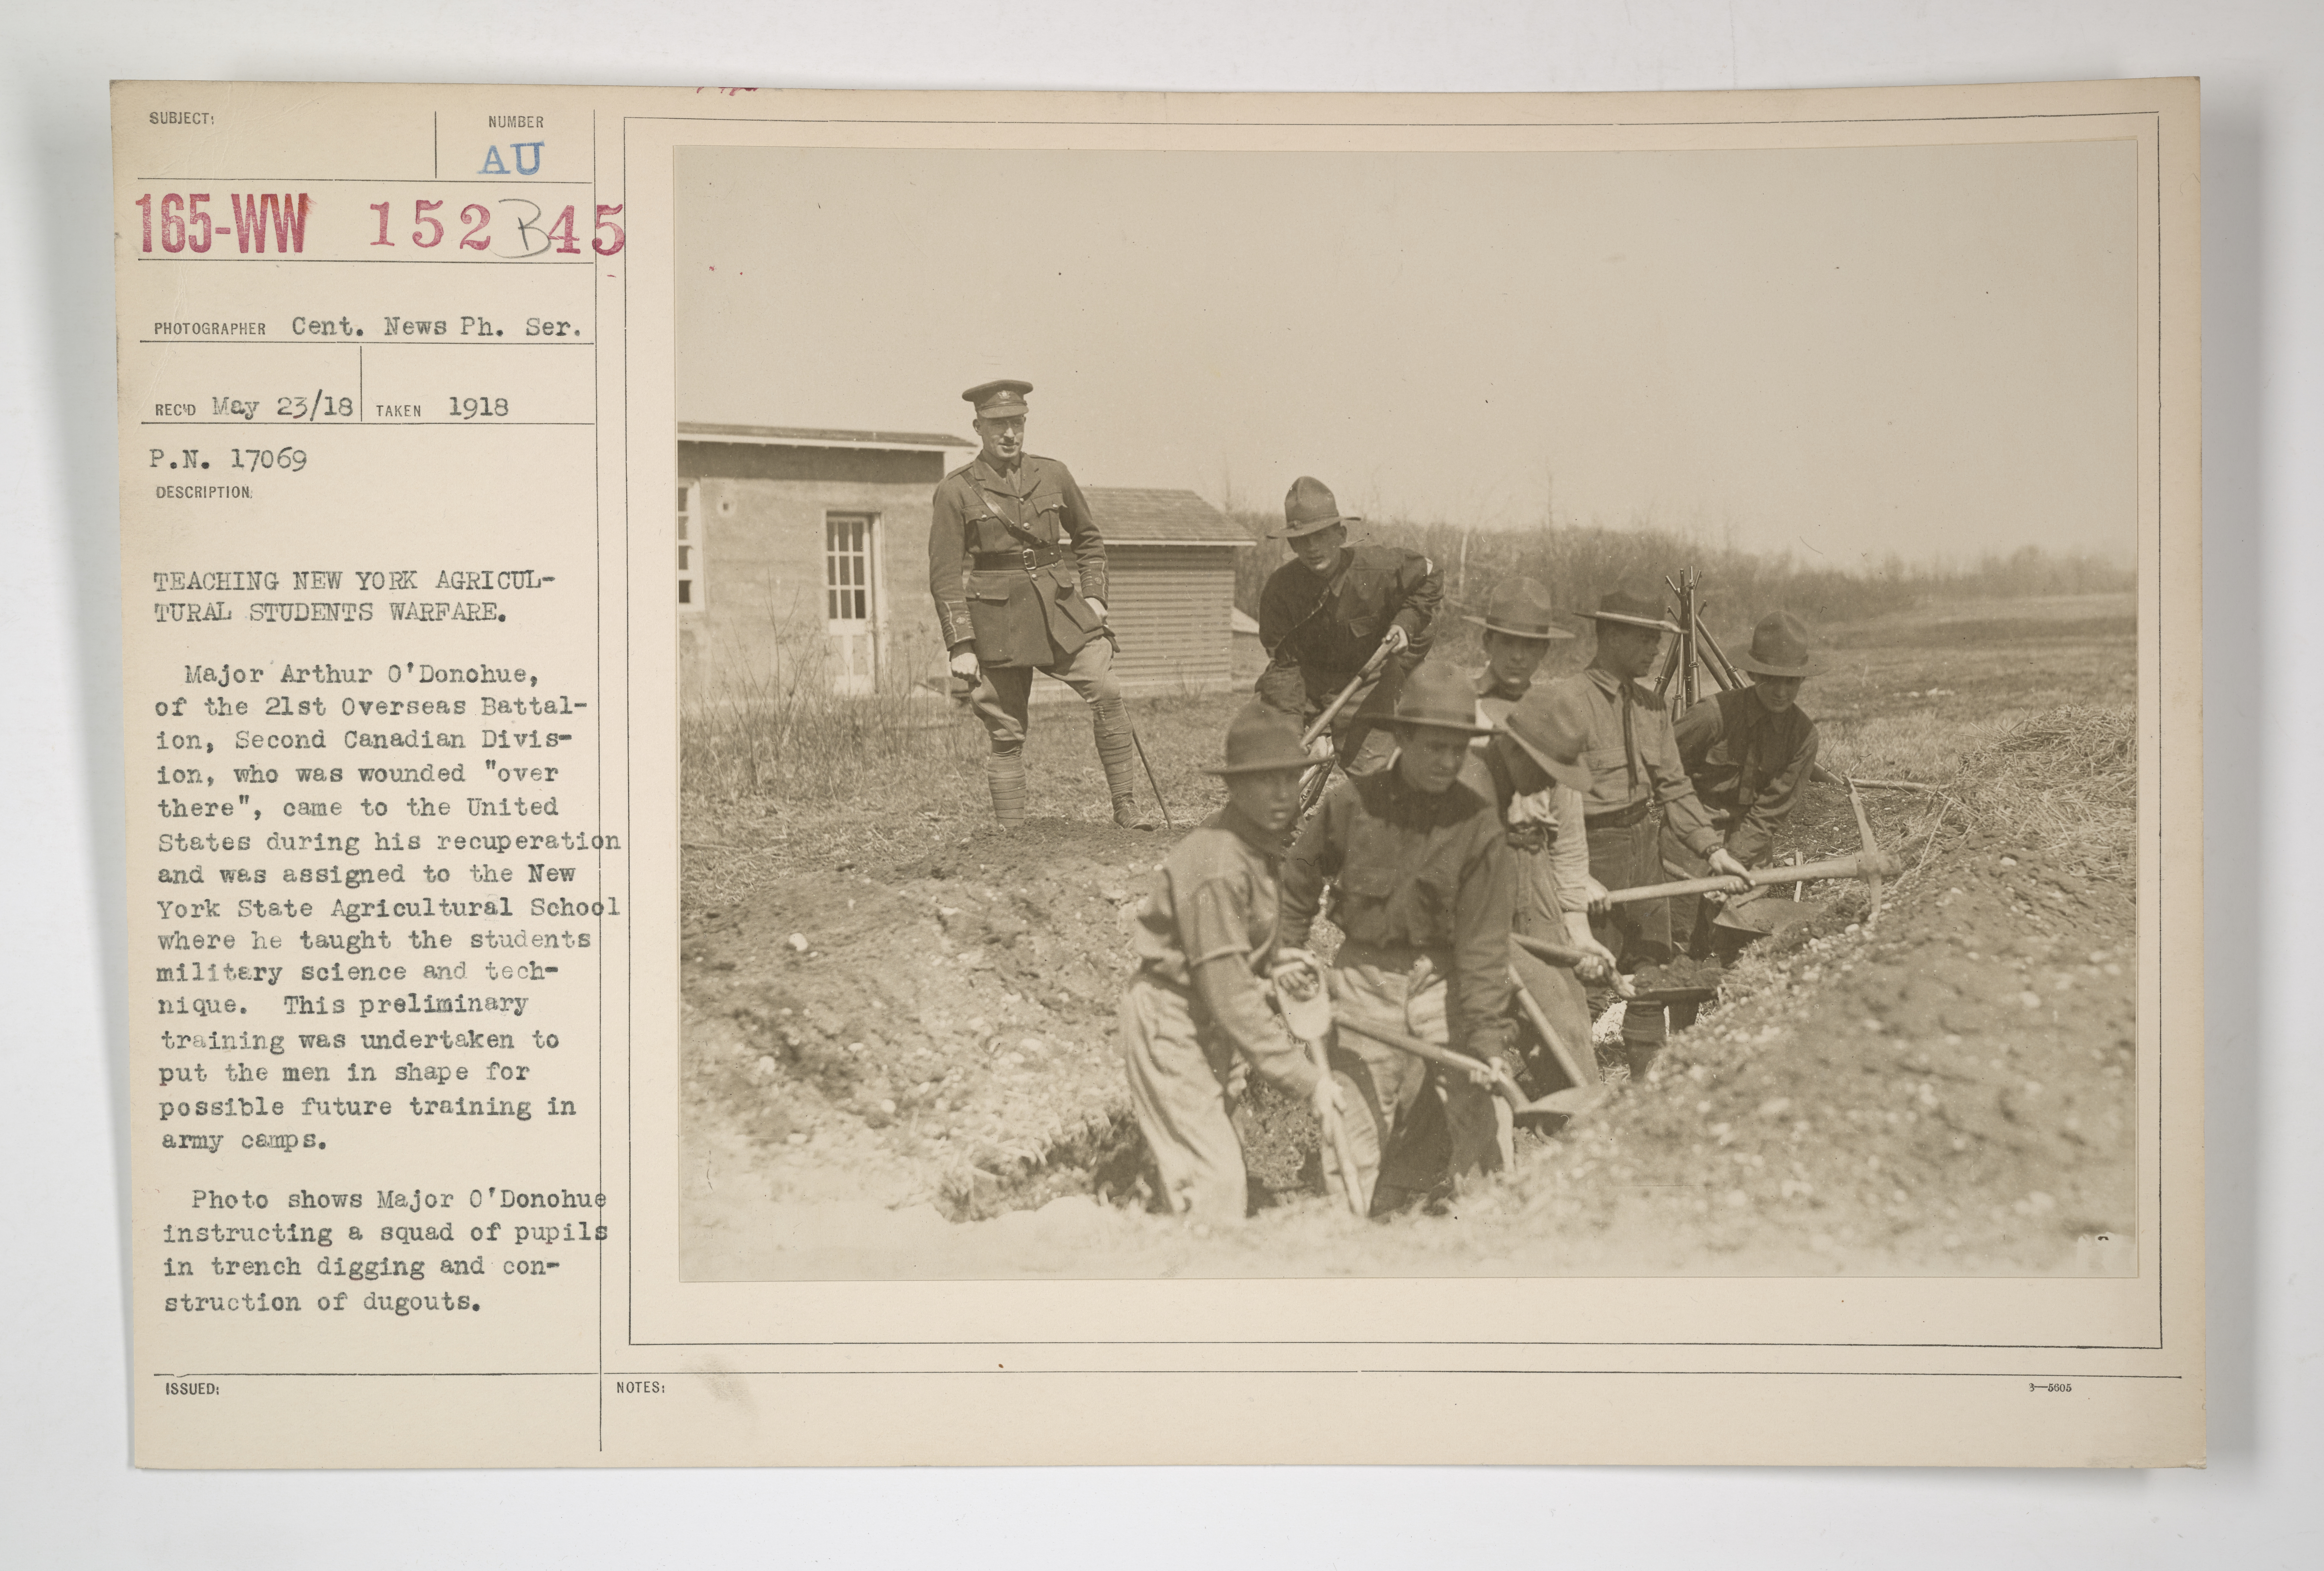 Drills - Trench Warfare - Teaching New York agricultural students warfare